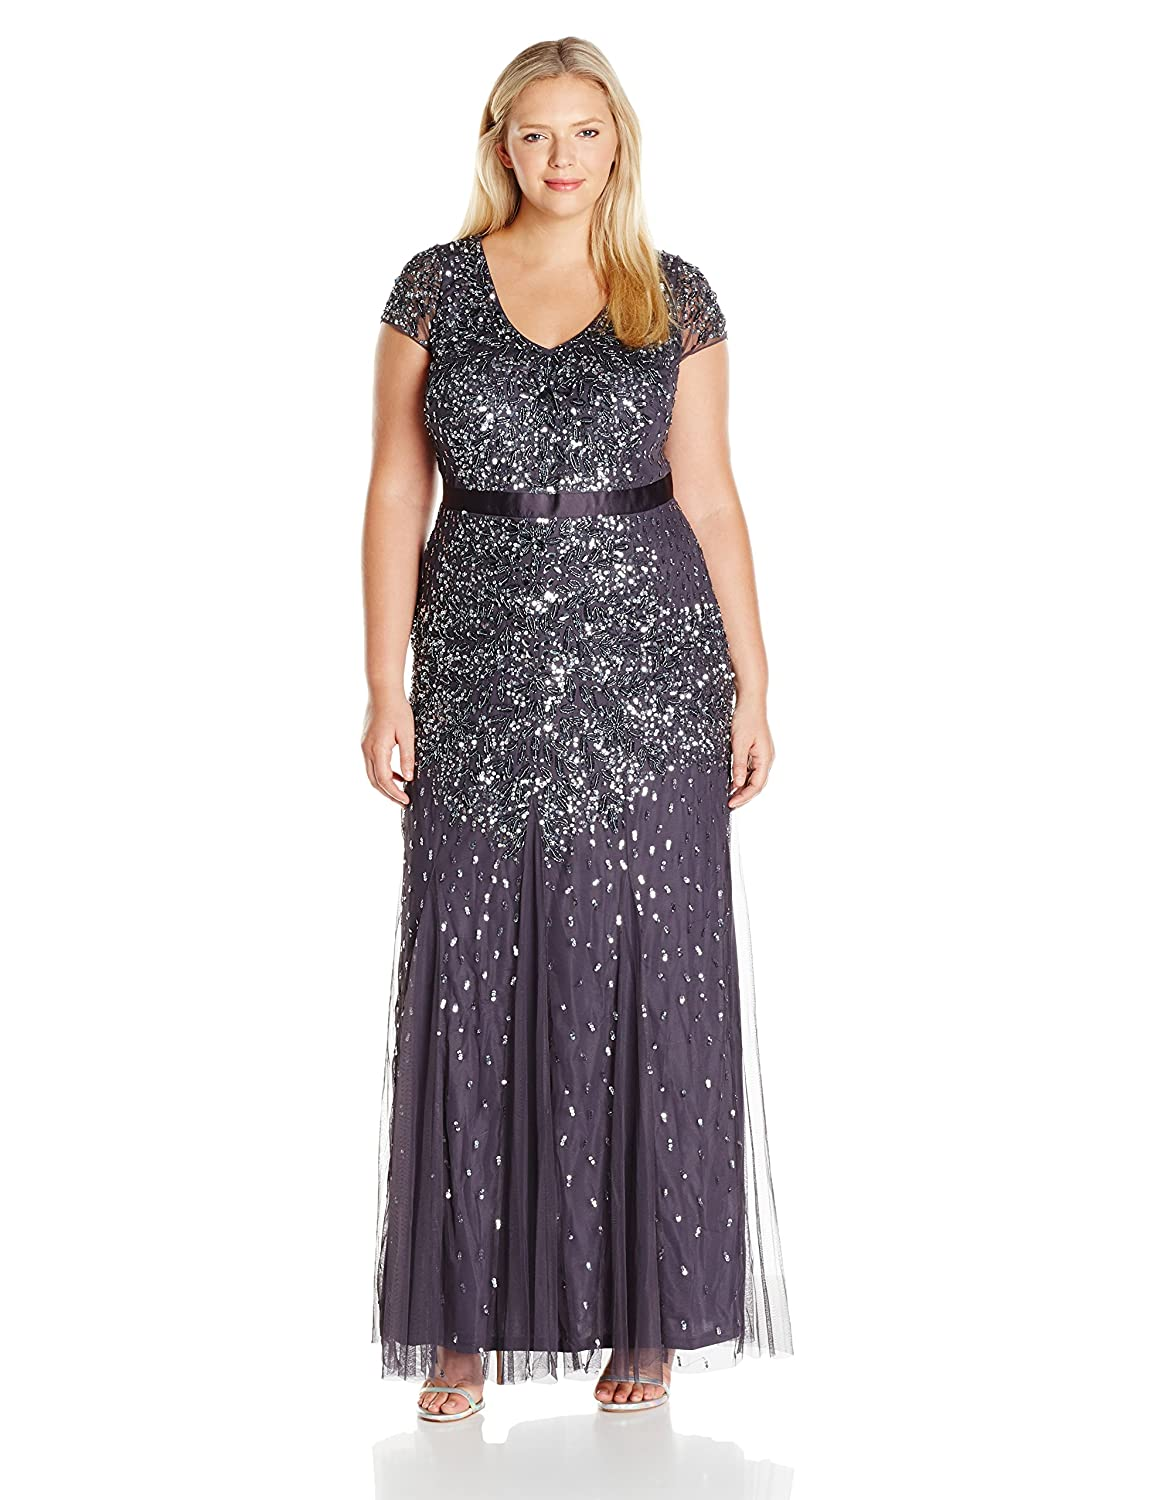 Gunmetal Adrianna Papell Women's Plus Size Cap Sleeve VNeck Fully Beaded Gown